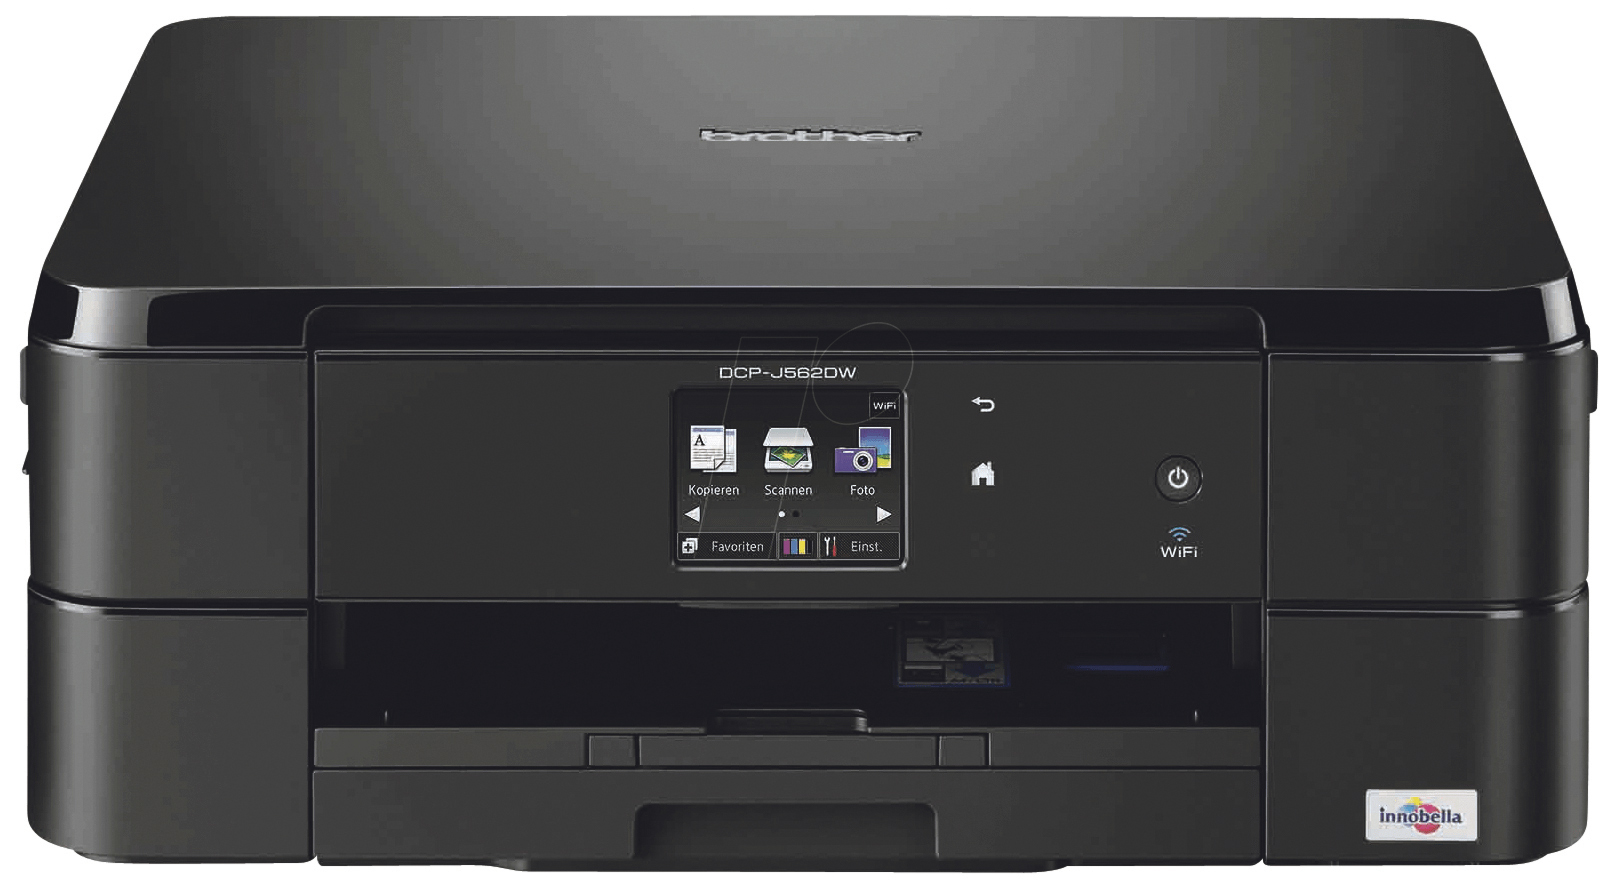 Printer (all in one) Brother DCP-J562DWIT en Telecom 4977766749008